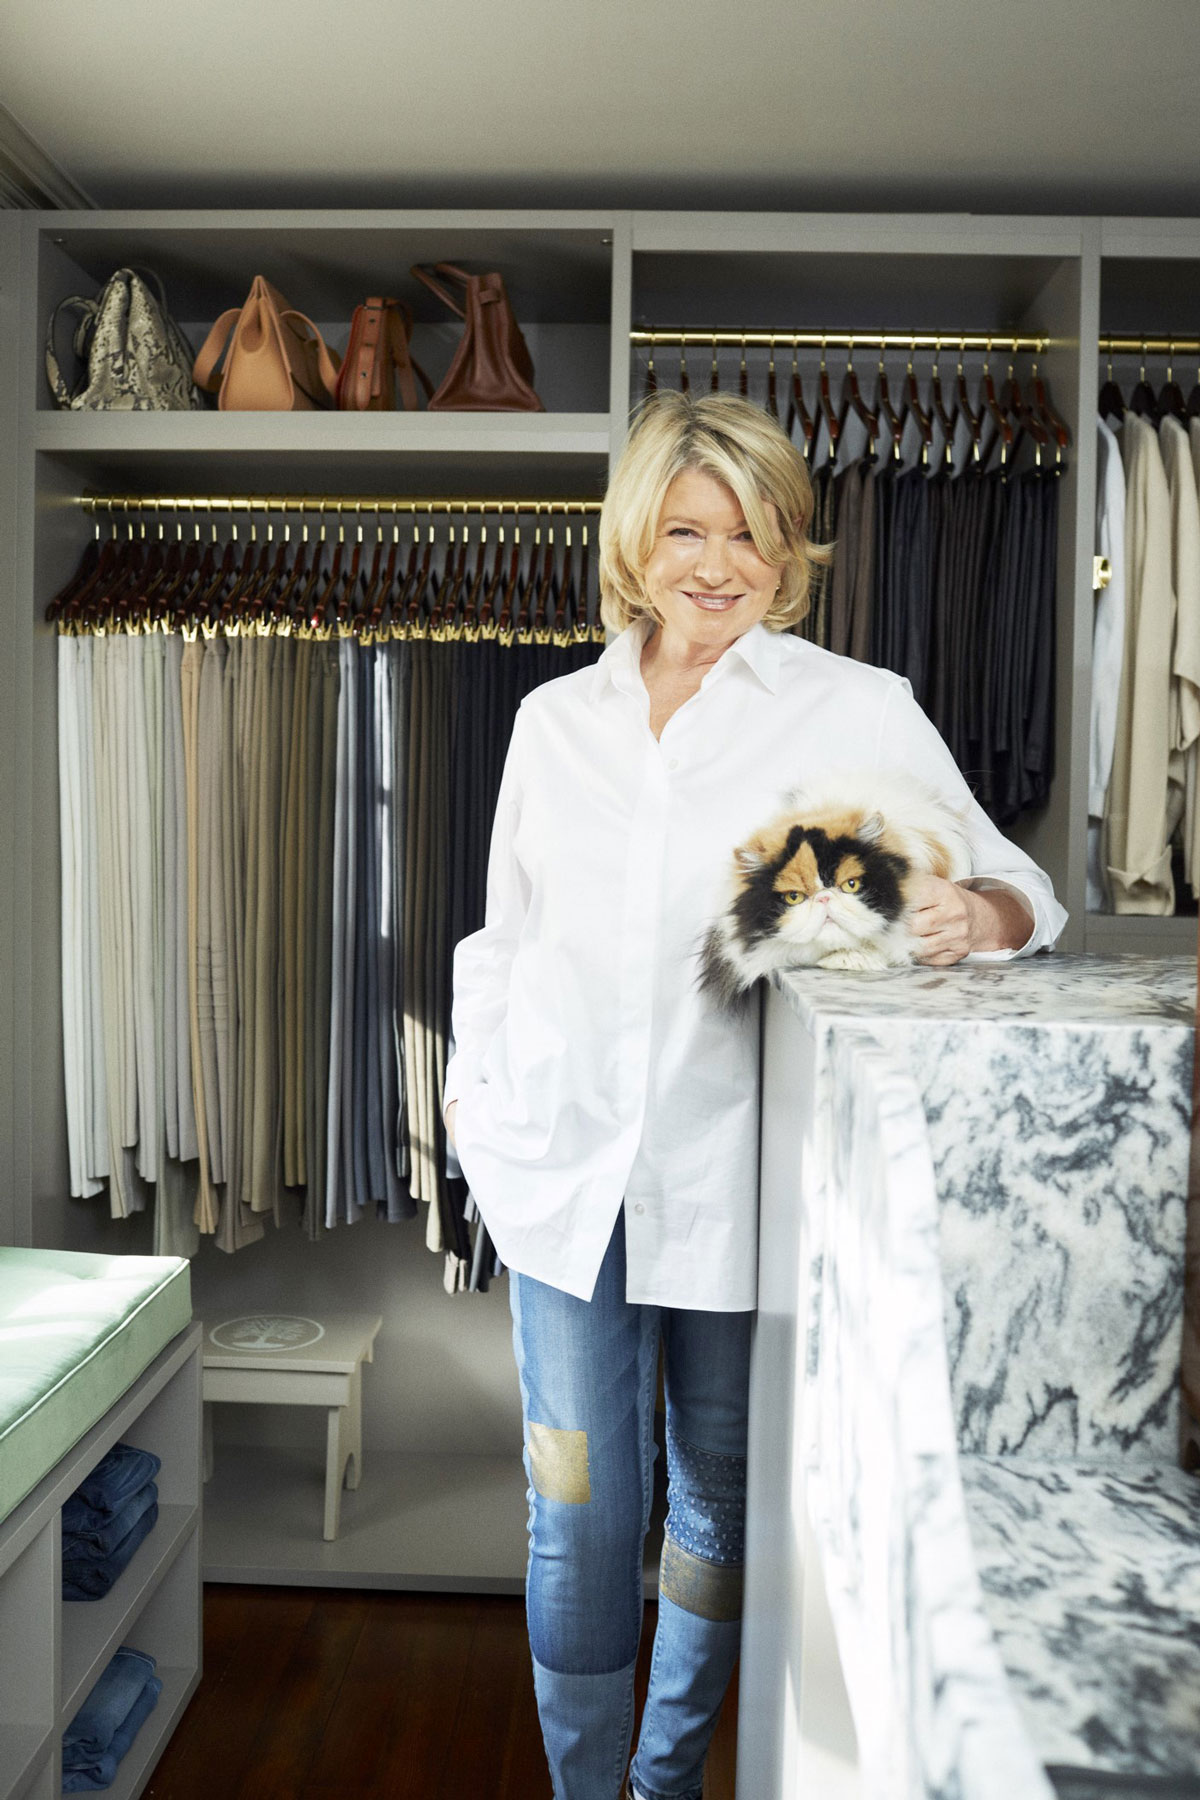 Martha Stewart and cat in her closet